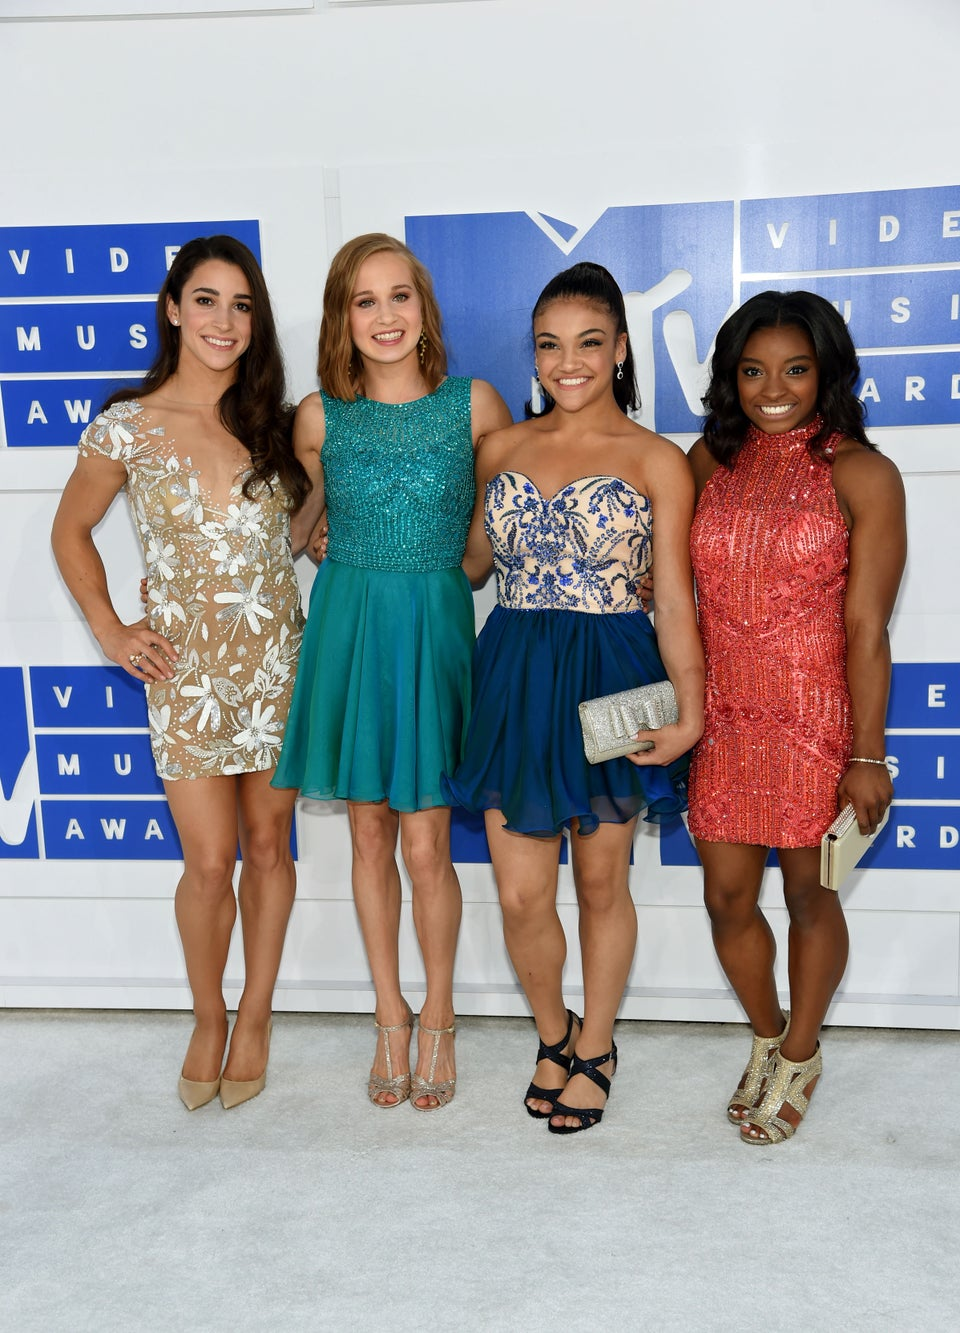 Simone Biles And The U.S. Women's Gymnastics Team Swap Their Leotards for Dazzling Gowns at the 2016 VMAs